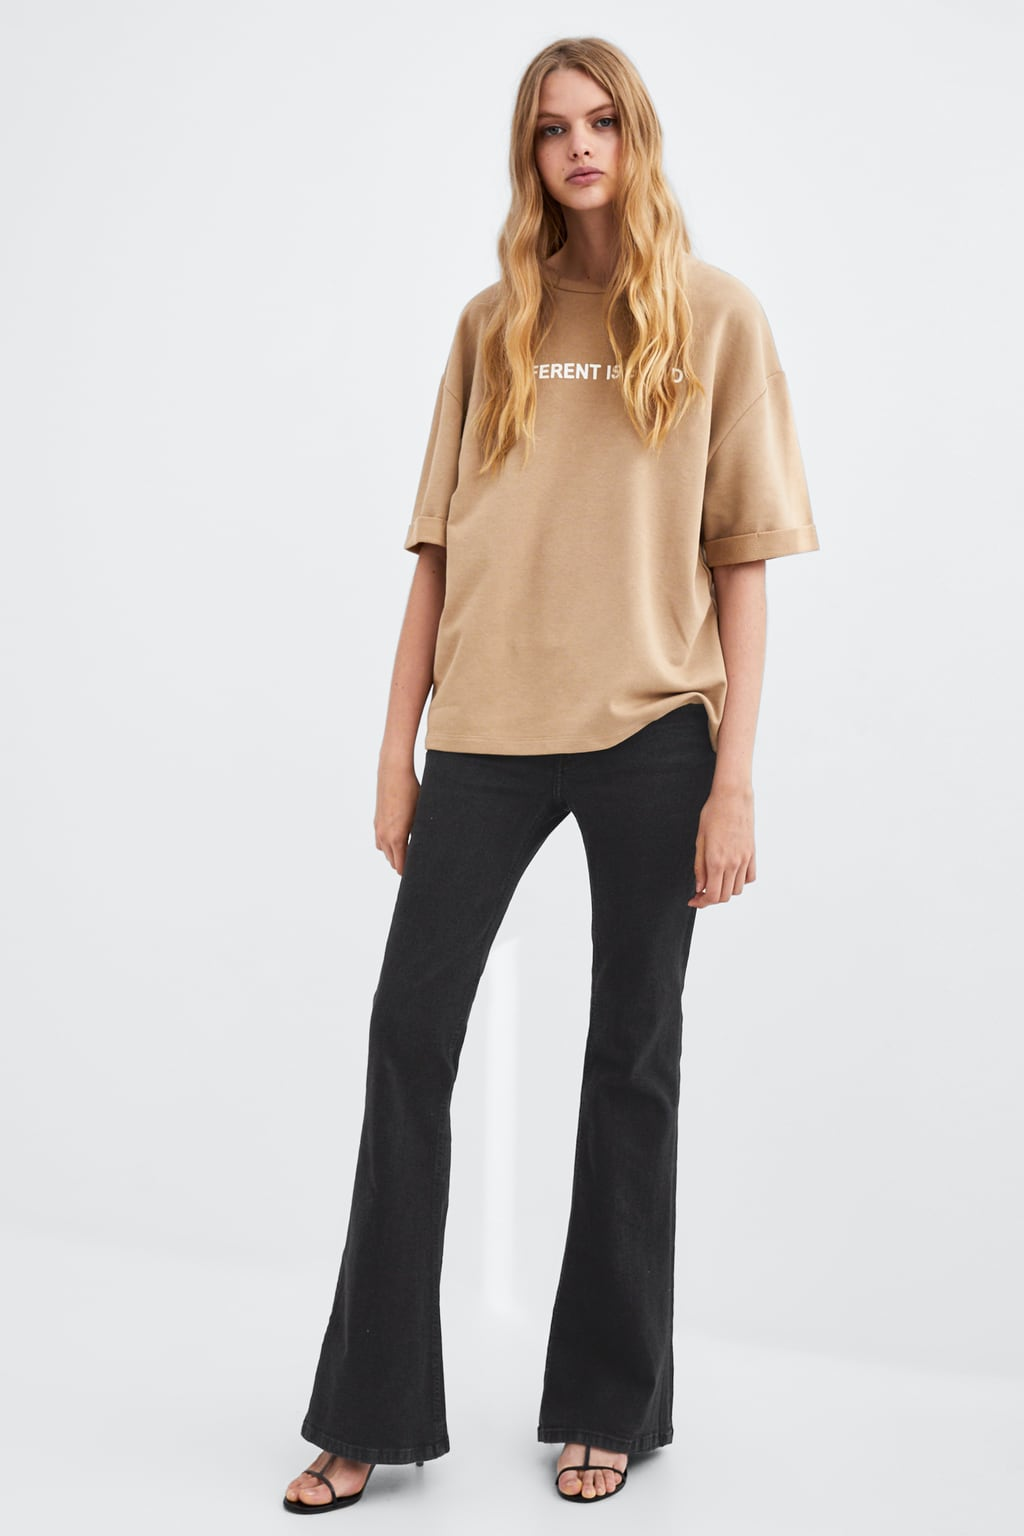 Plush T  Shirt With Text Graphic & Slogans T Shirts Woman by Zara